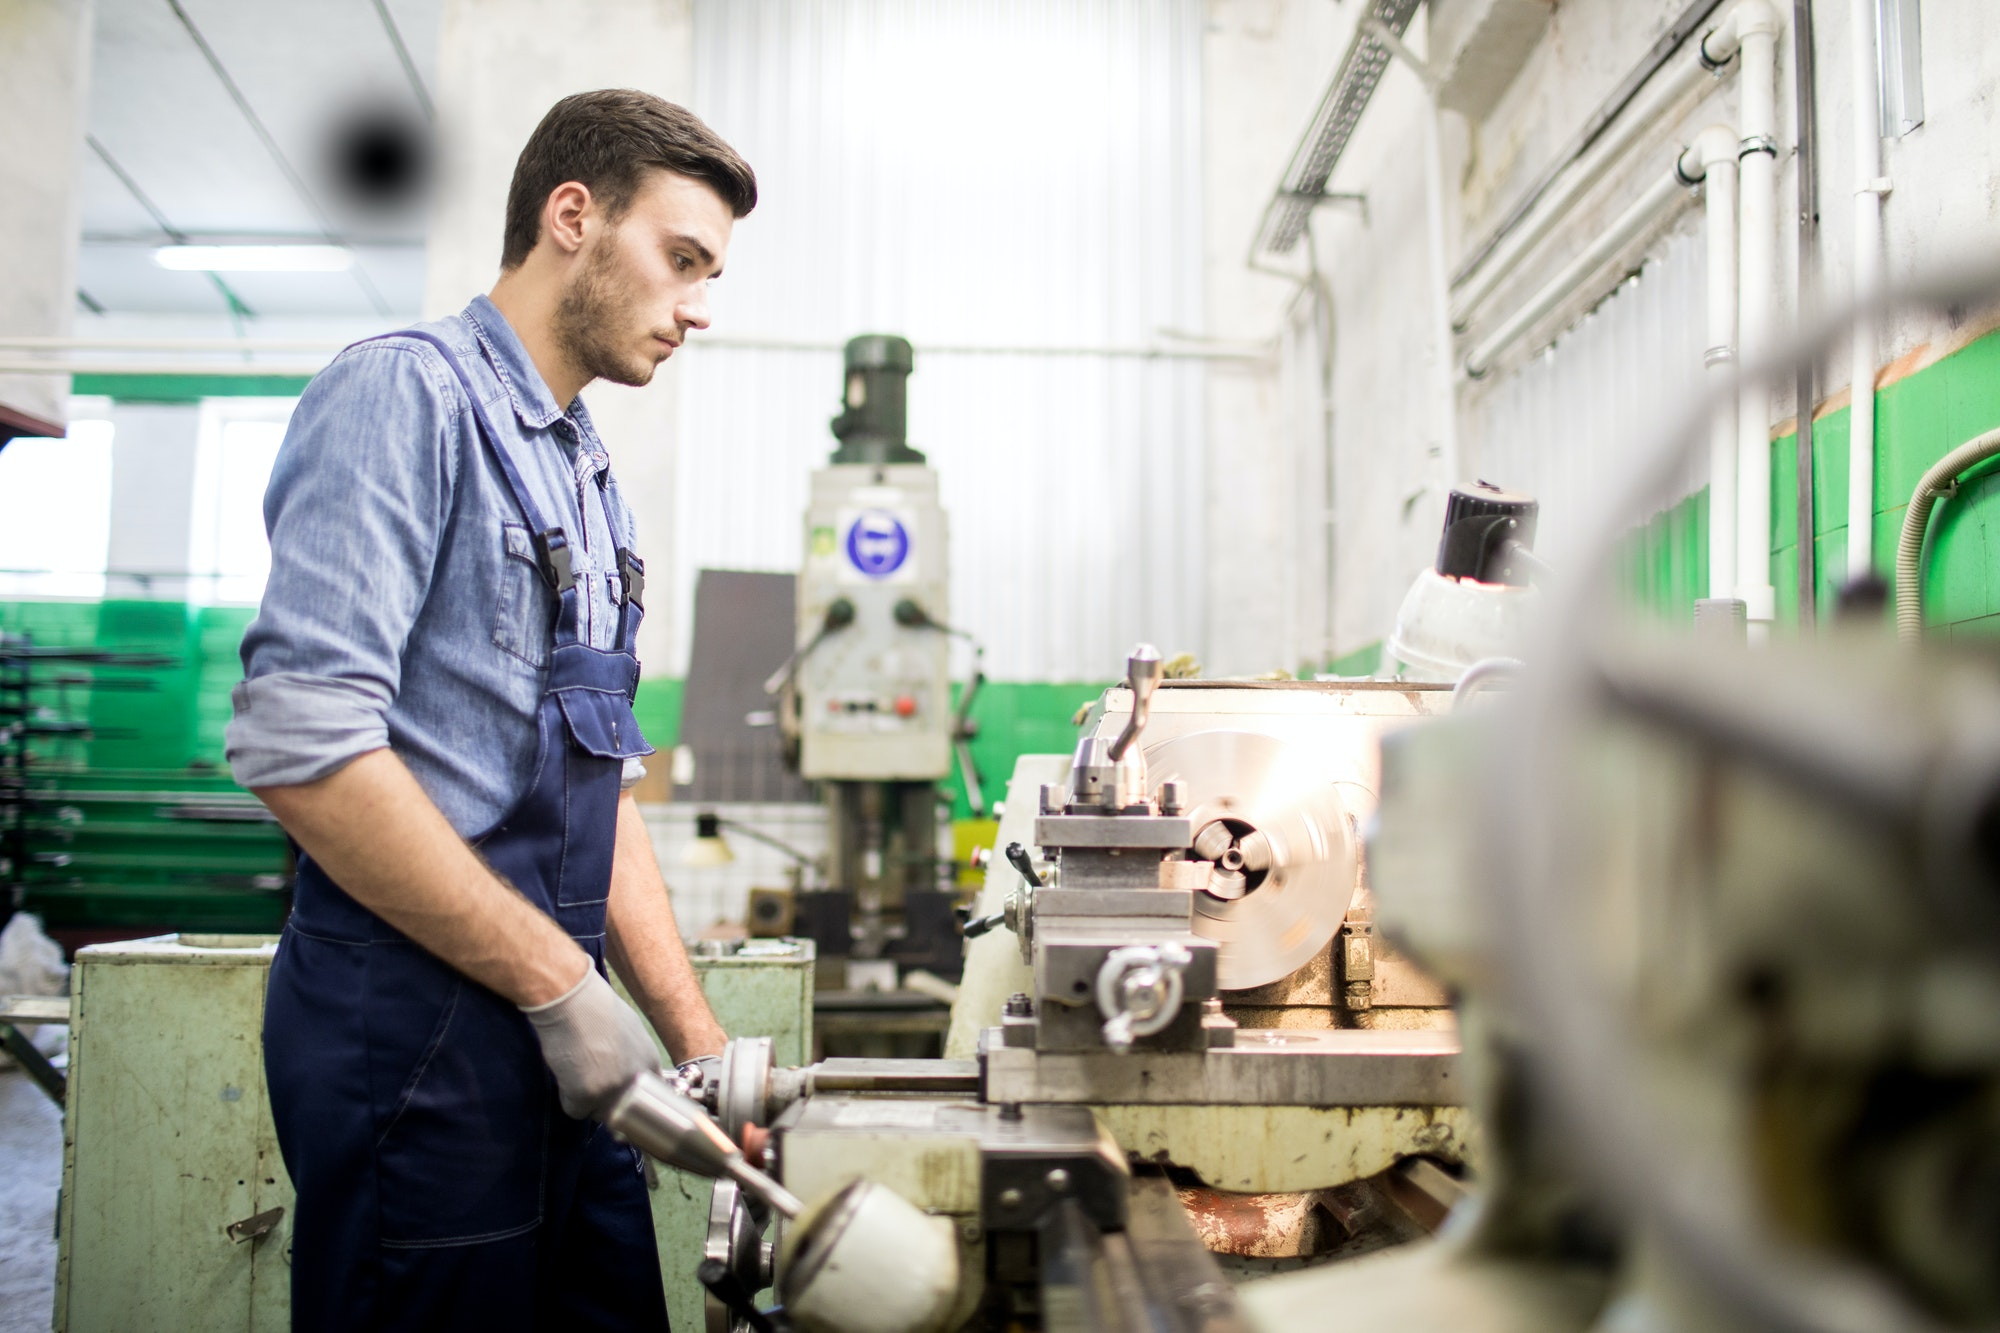 what are skills needed for an mep engineer